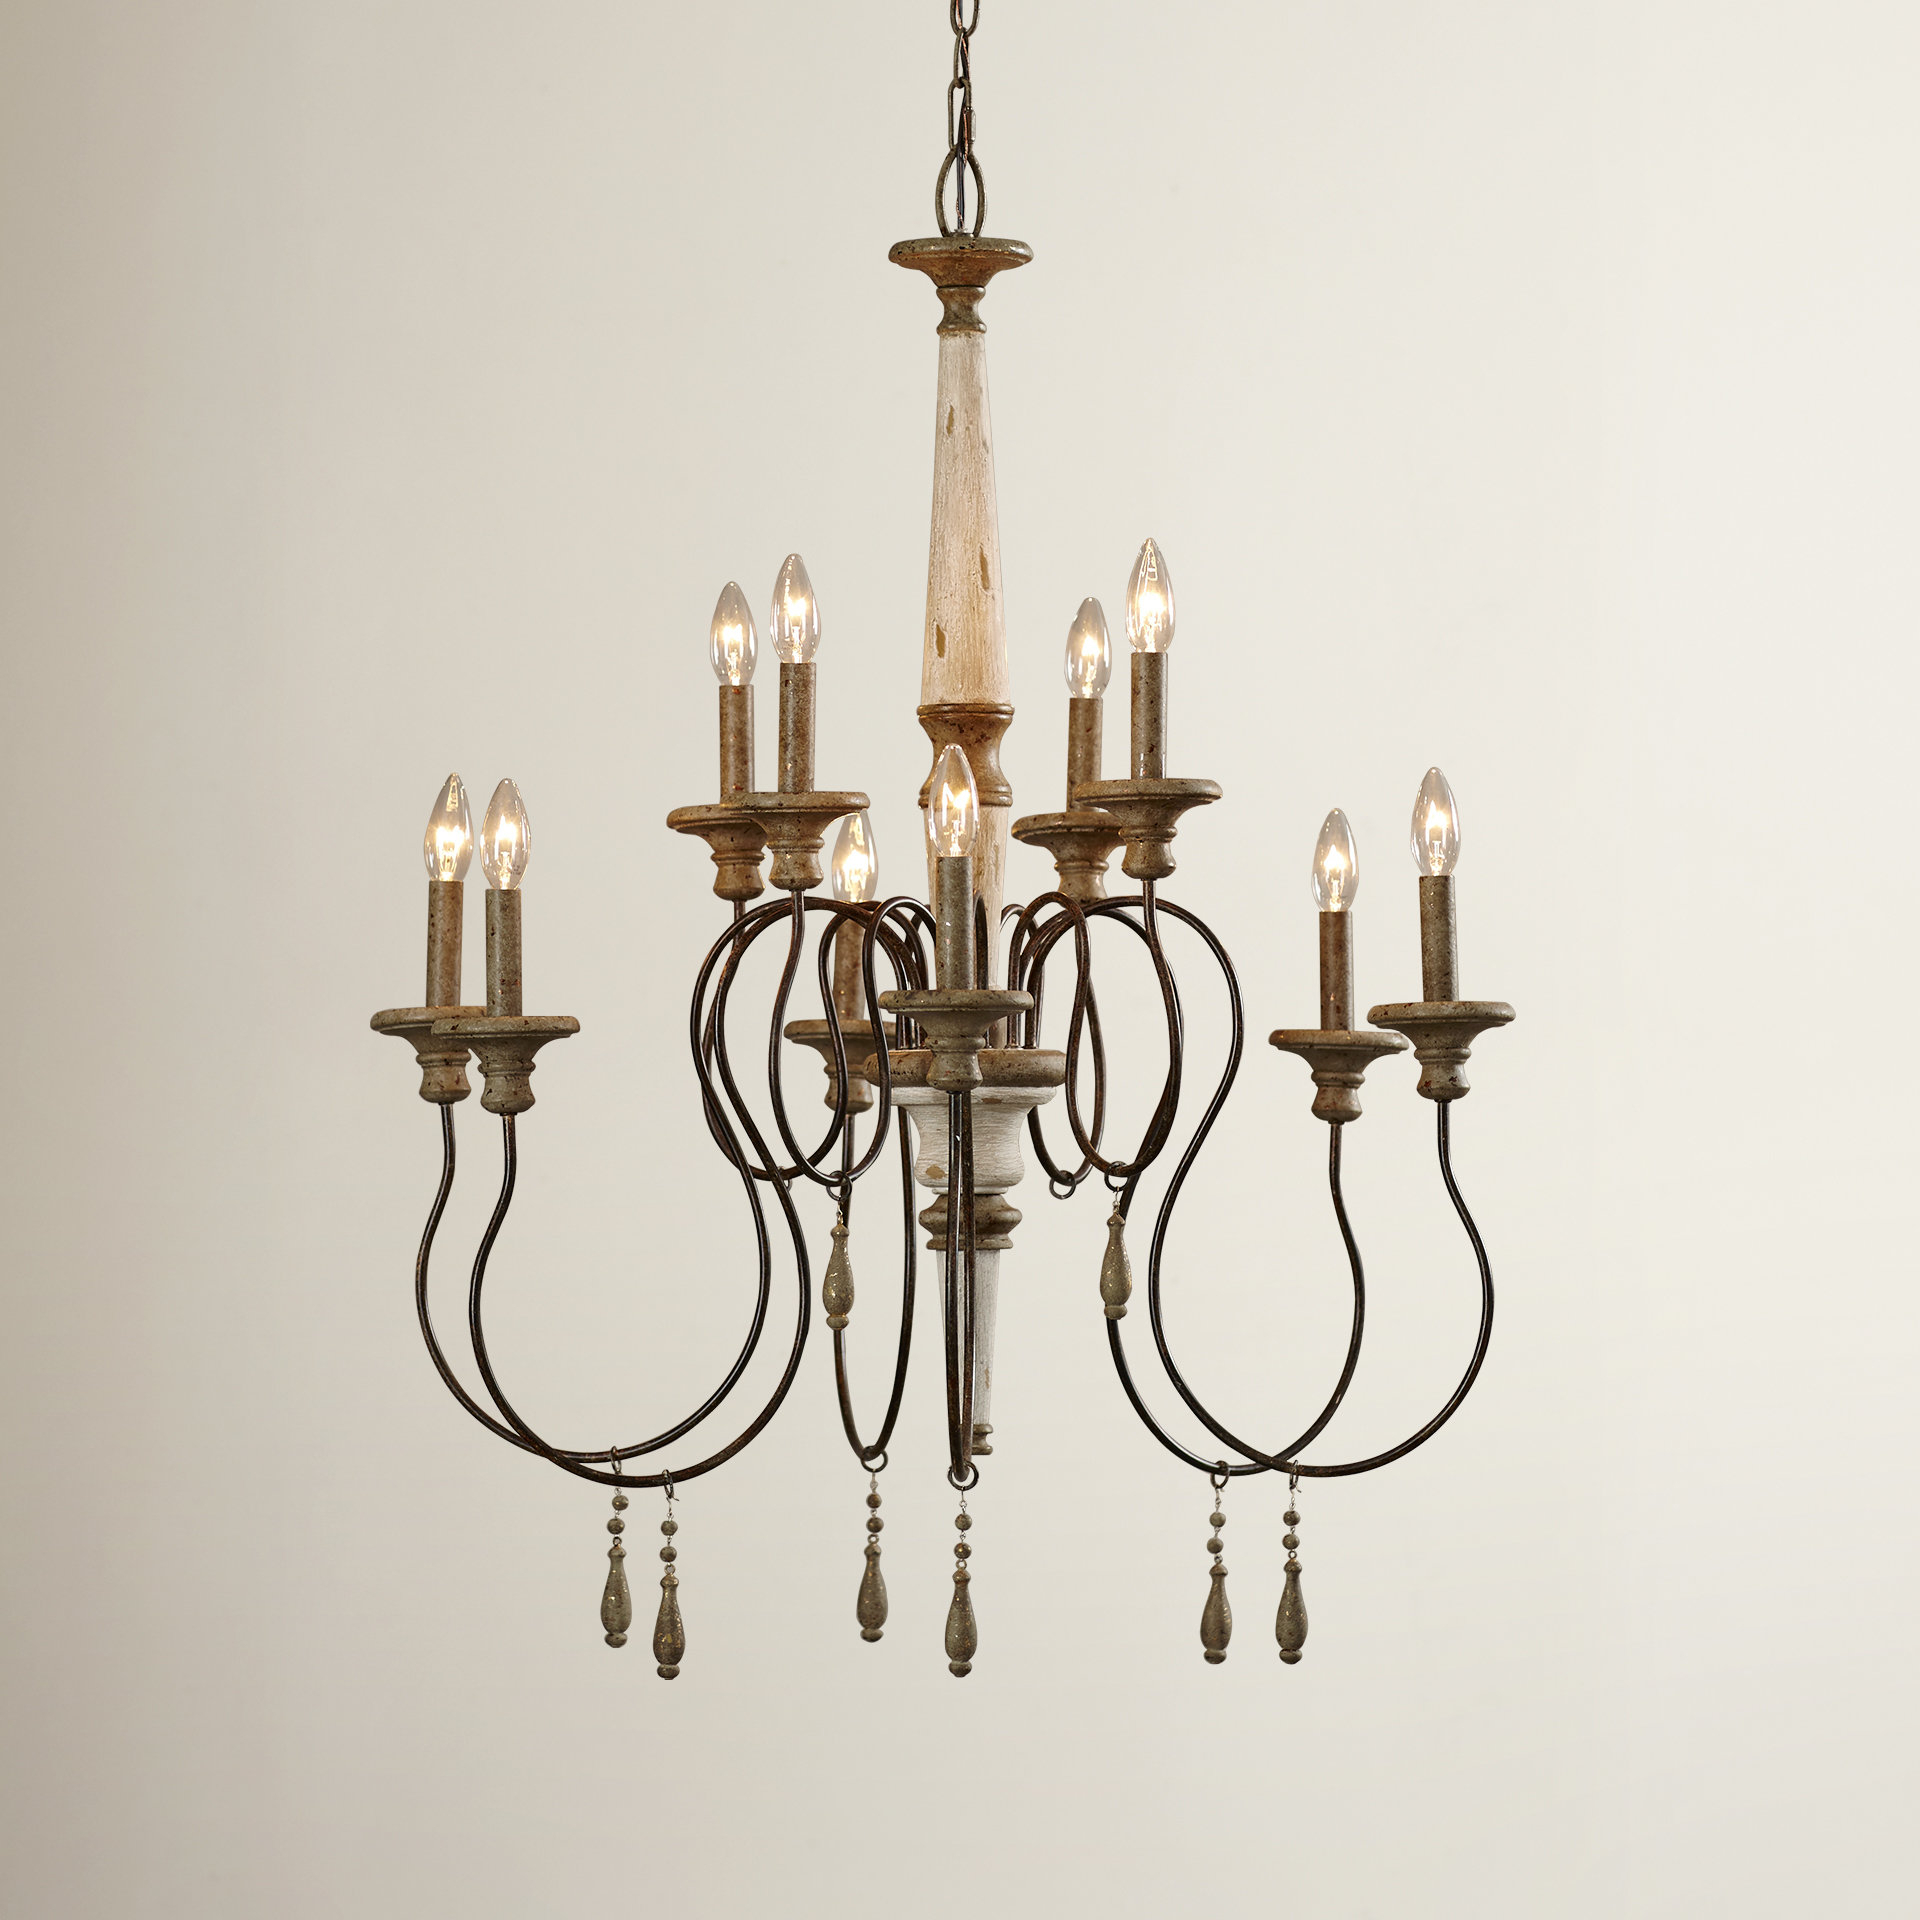 Armande Candle Style Chandelier Throughout Armande Candle Style Chandeliers (Image 8 of 30)